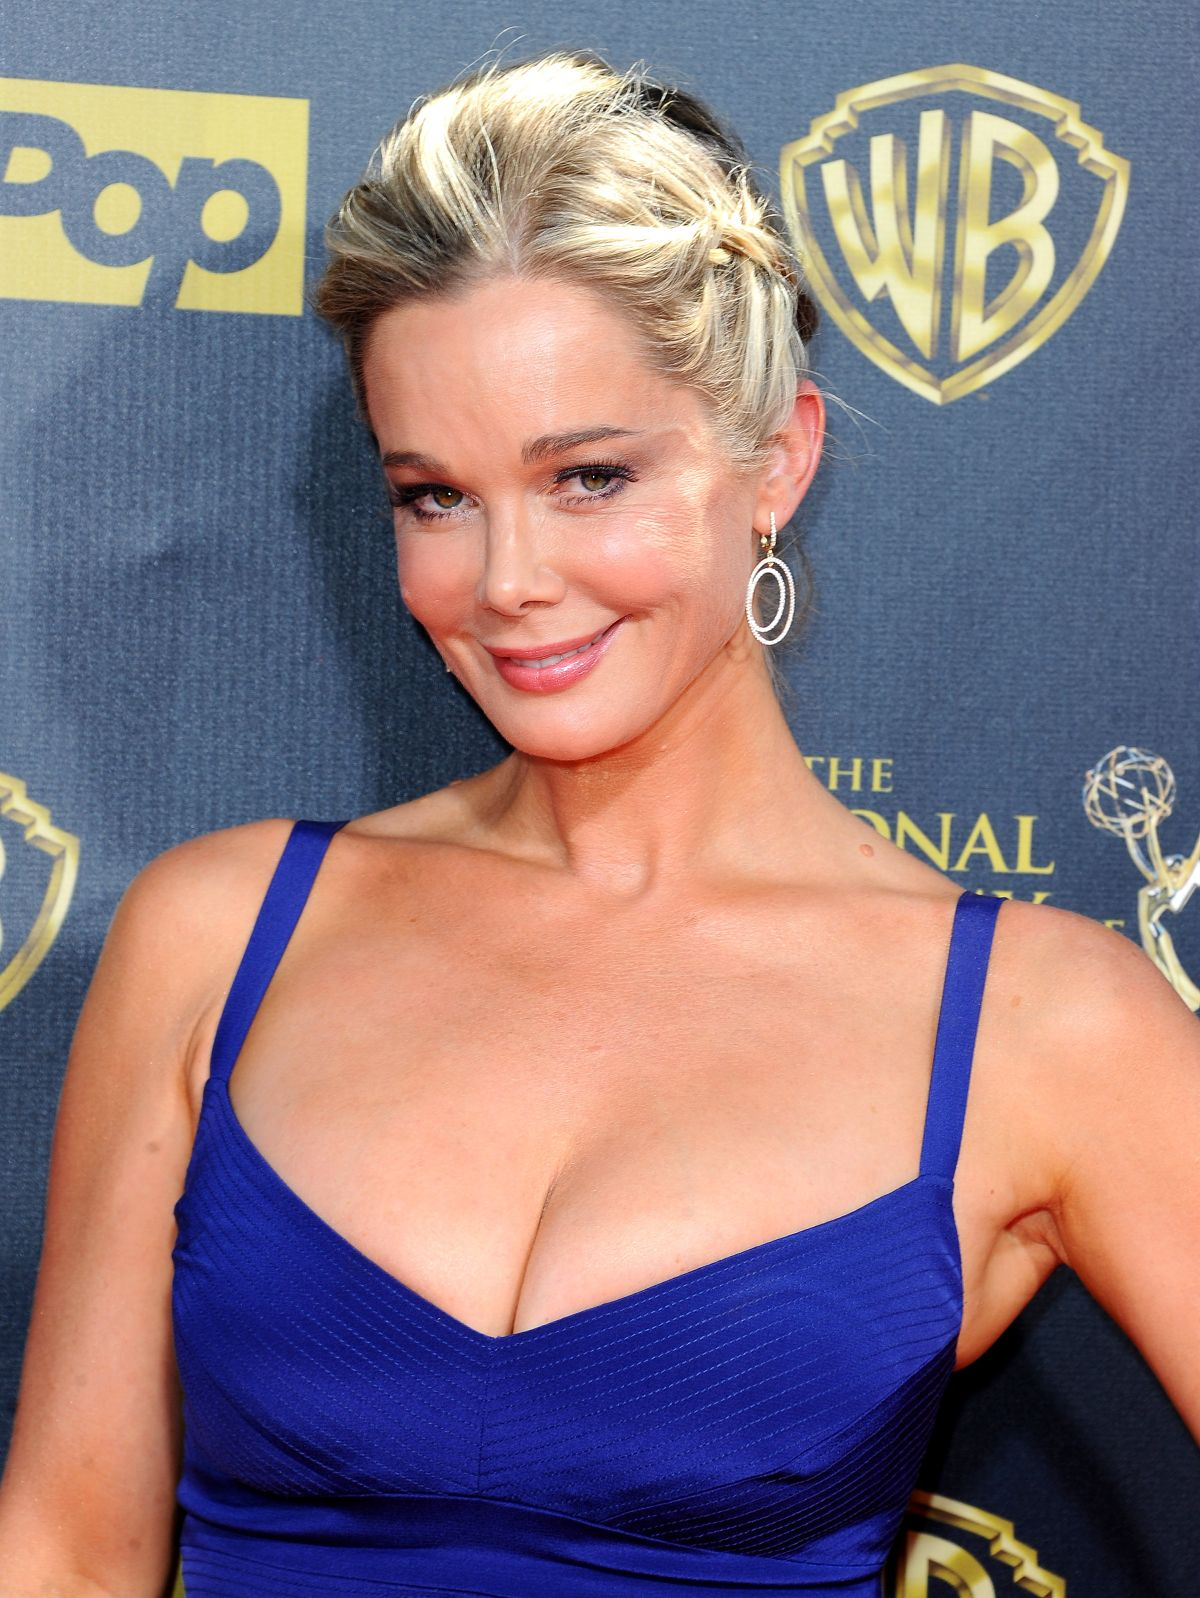 JENNIFER GAREIS at 2015 Daytime Emmy Awards in Burbank